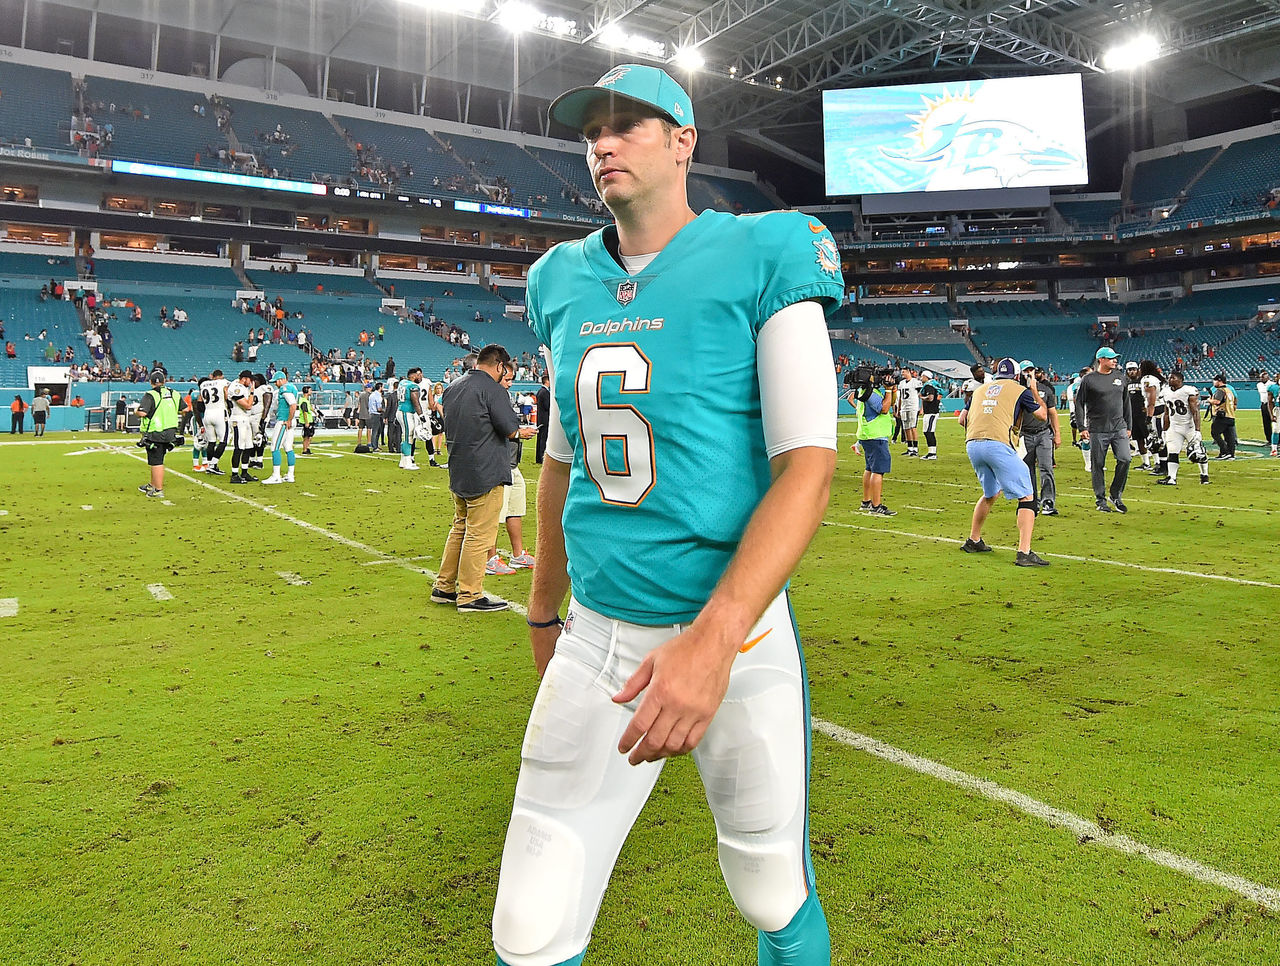 Cropped 2017 08 18t023827z 128055178 nocid rtrmadp 3 nfl baltimore ravens at miami dolphins